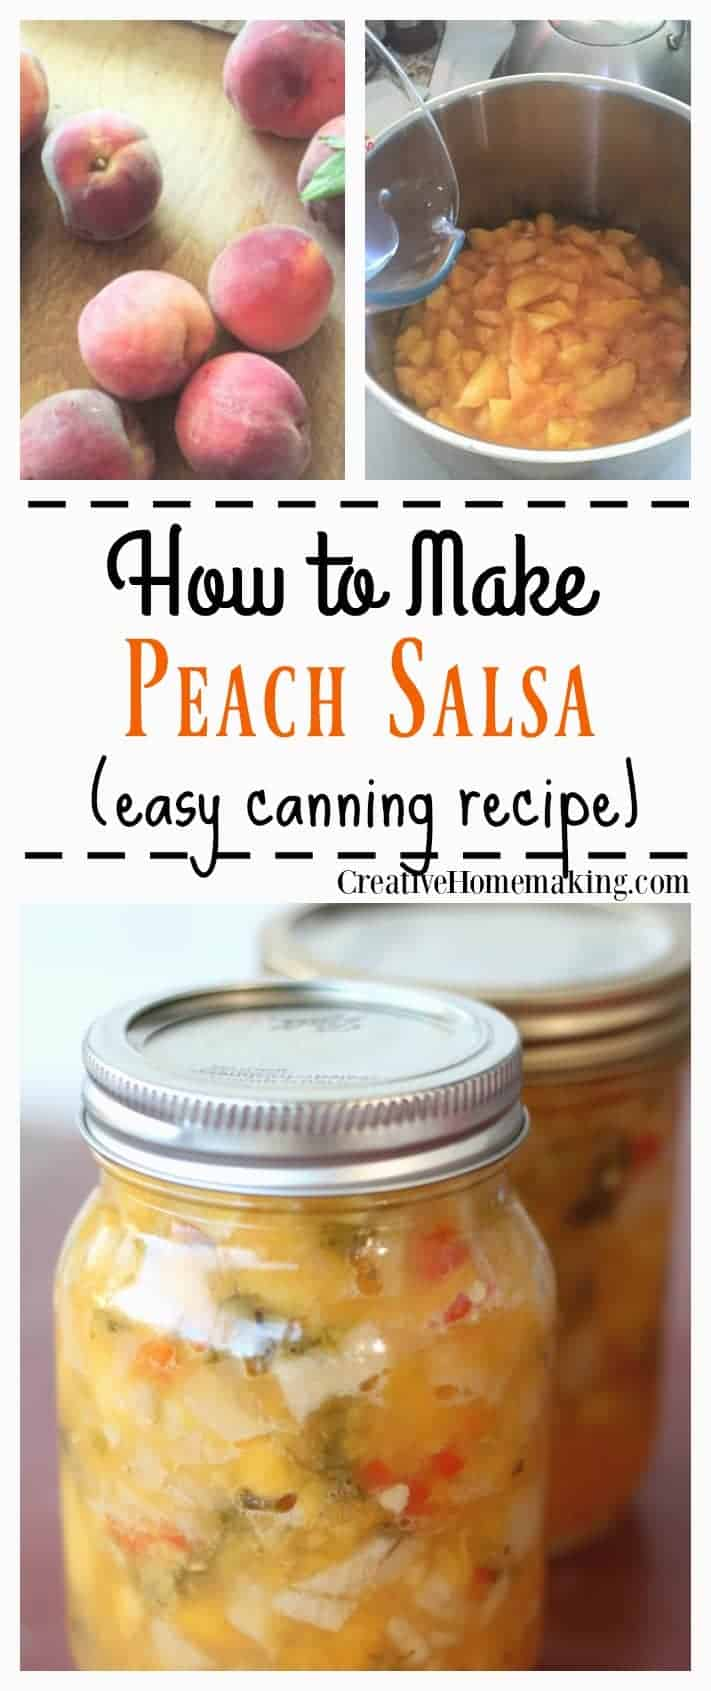 peach salsa creative home making - 7 Healthy Treats for Satisfying Sugar Cravings + An Easy Homemade Popcorn Recipe